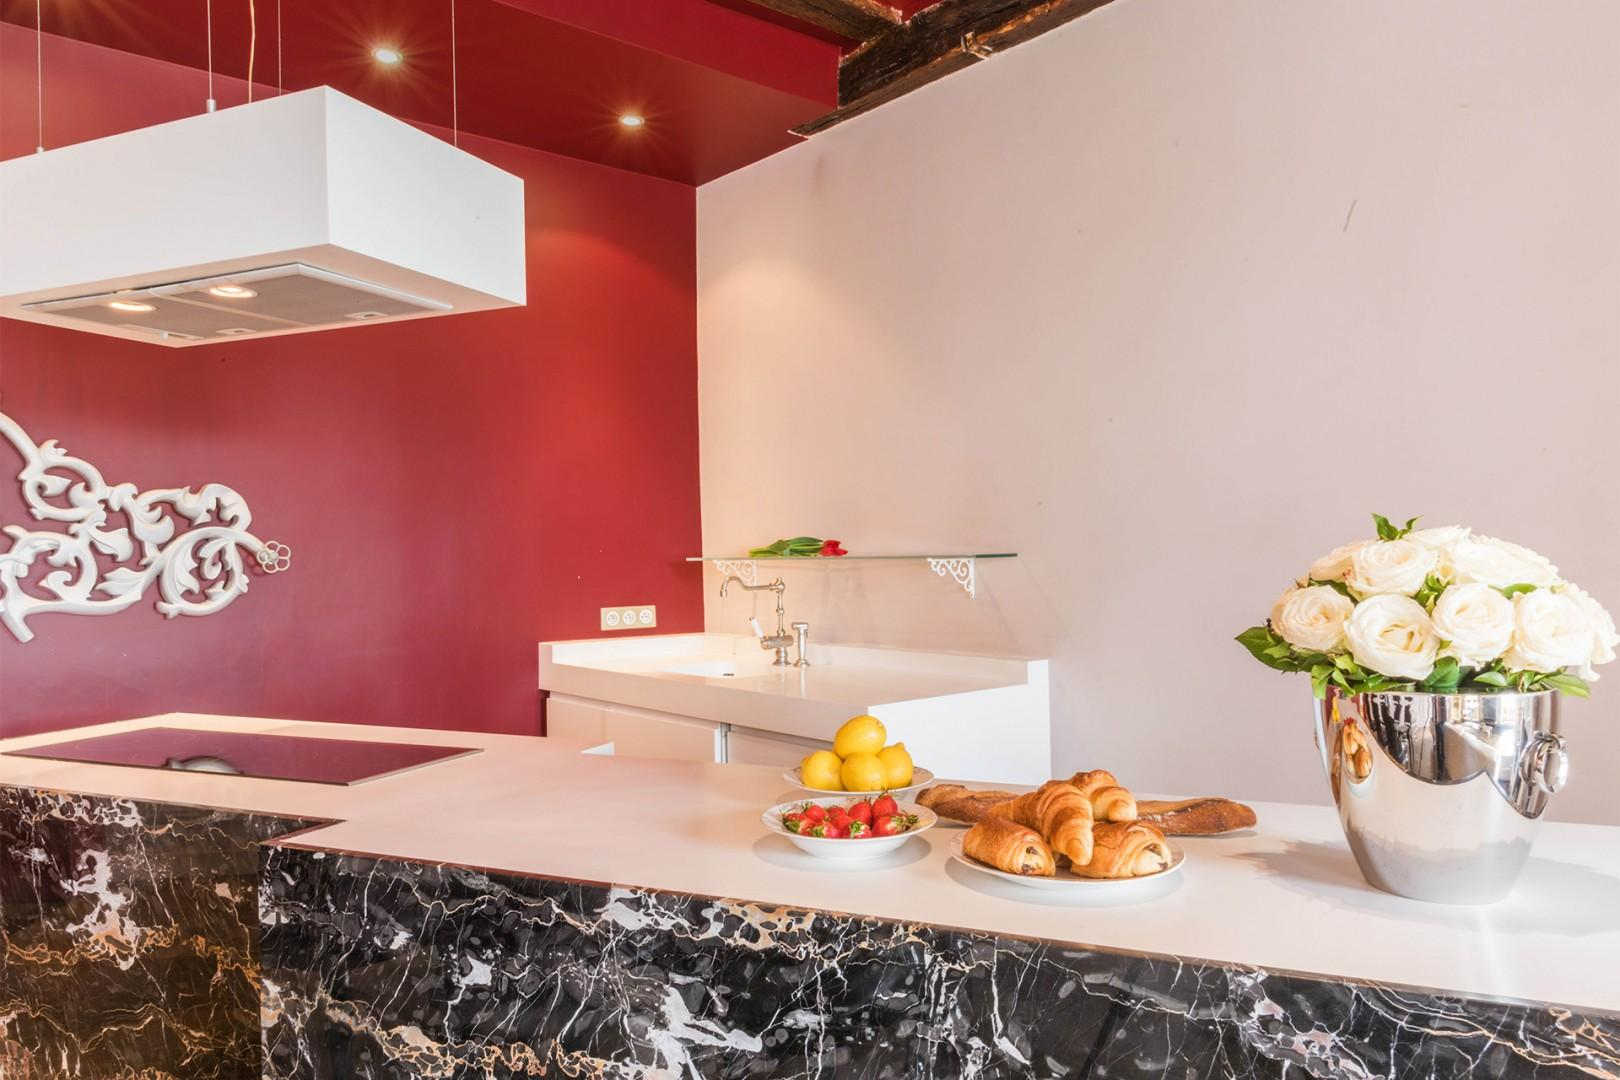 The cleverly designed kitchen keeps everything neatly out of sight.